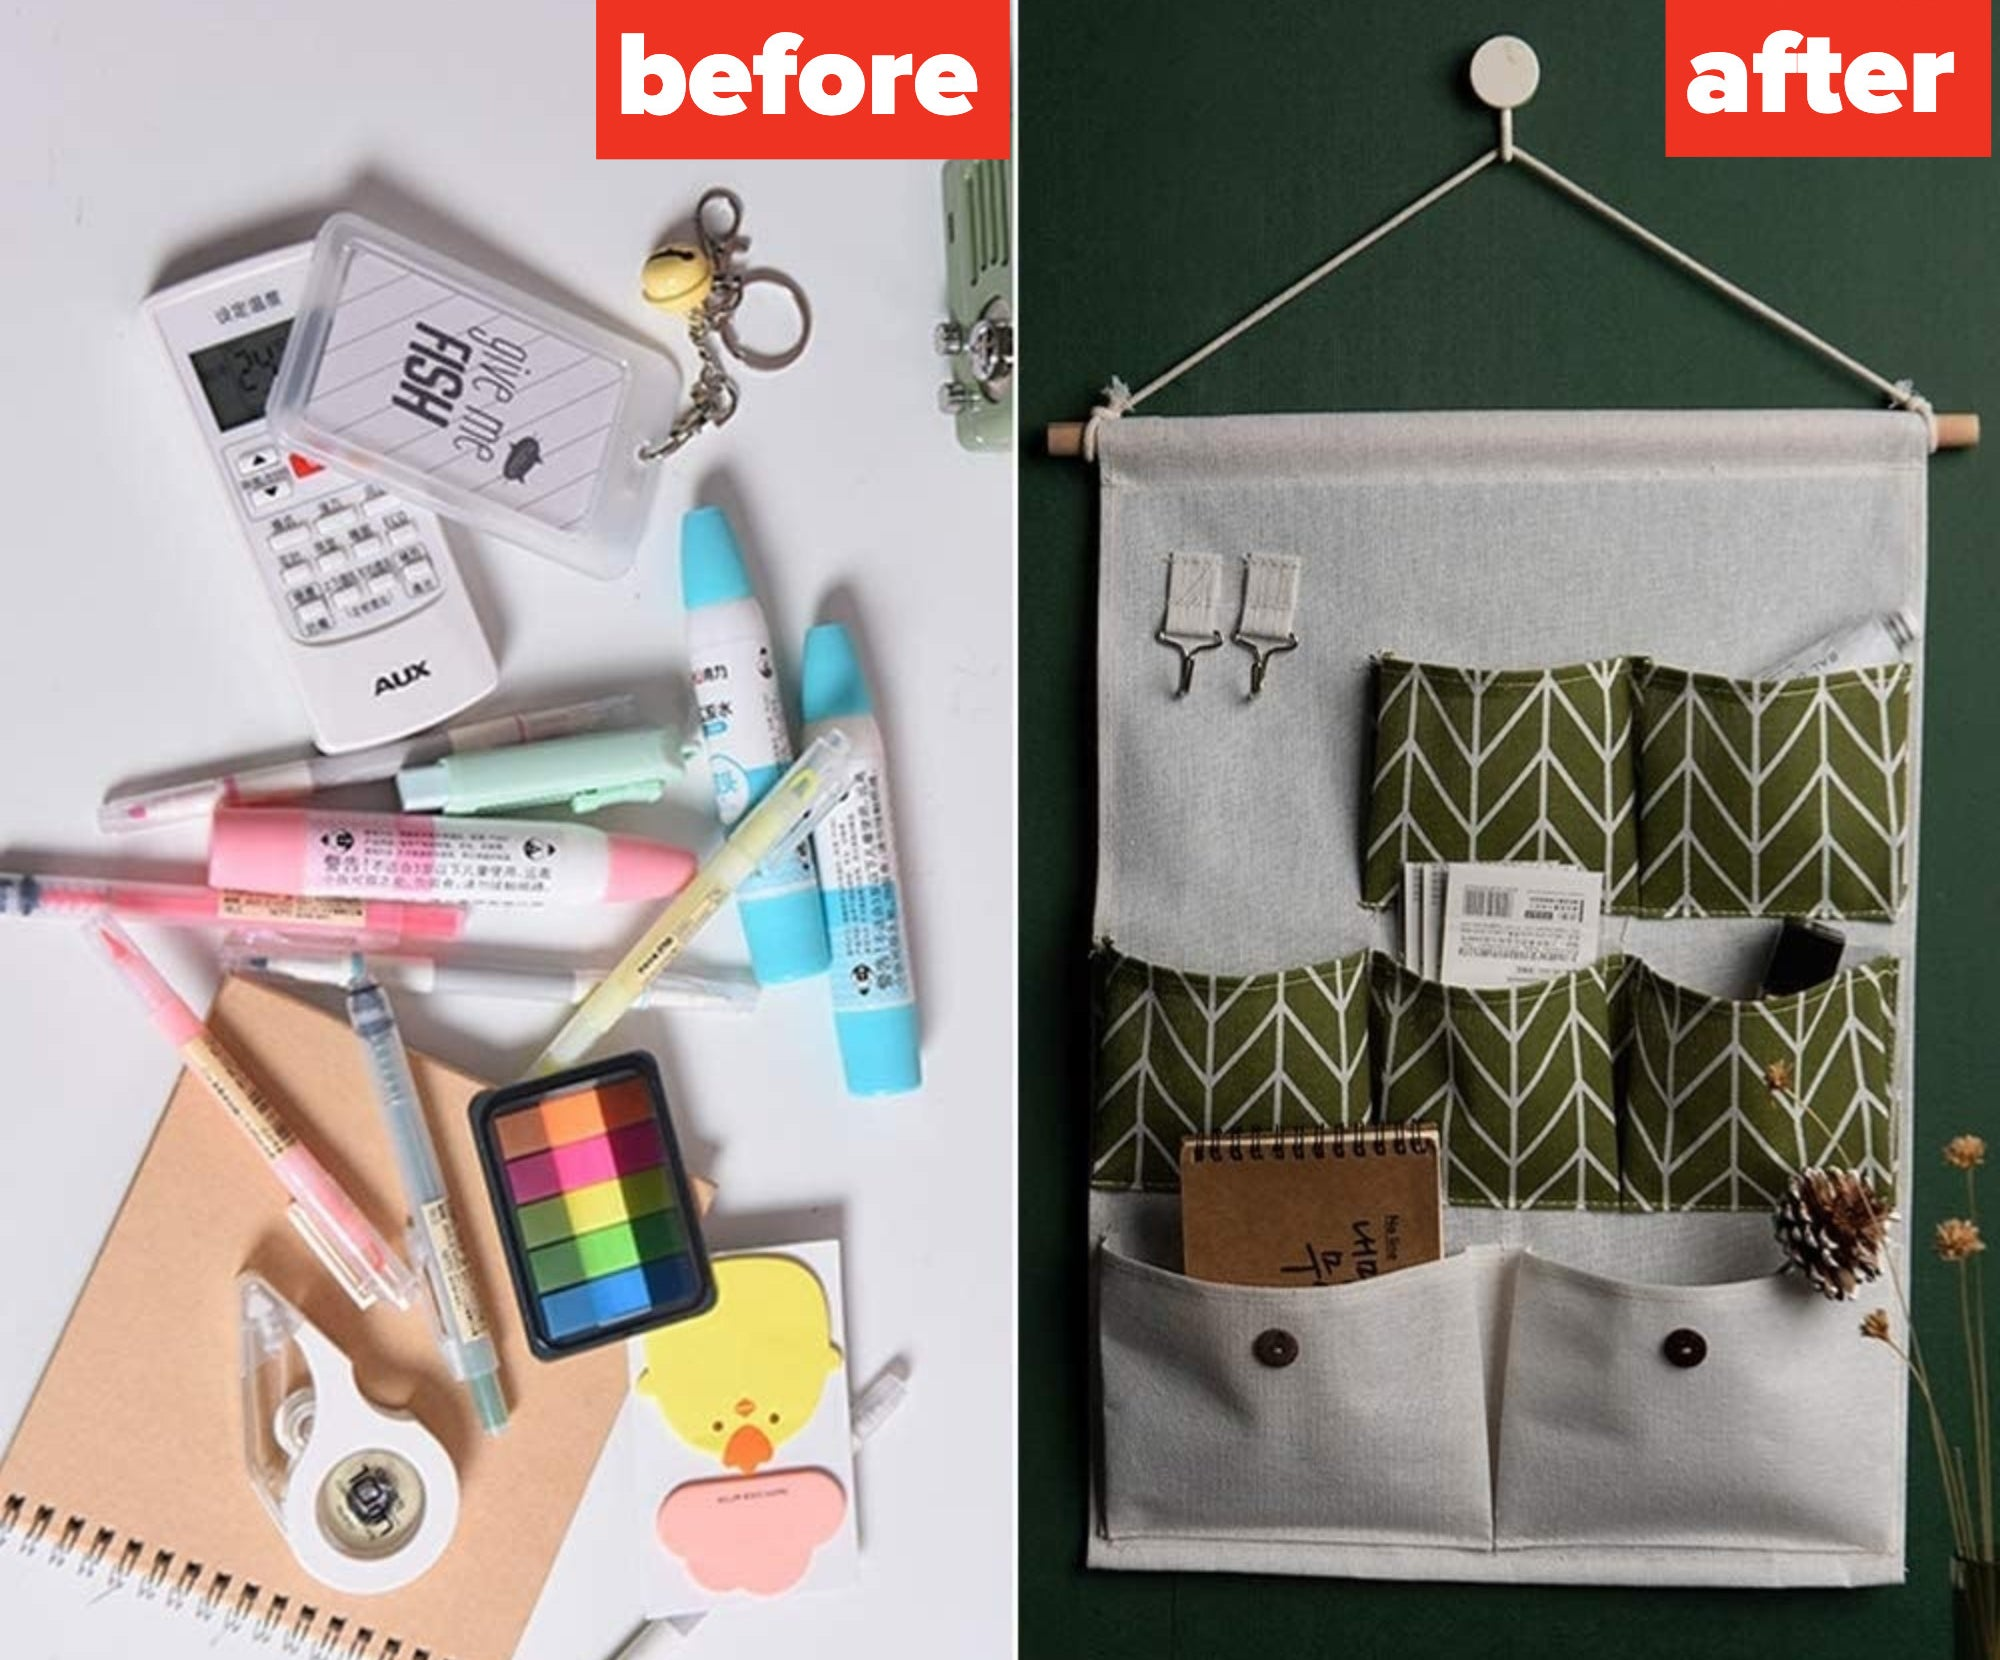 the before image of cluttered stationery laid out on a desk beside the after image of everything tucked away into the wall storage pocket